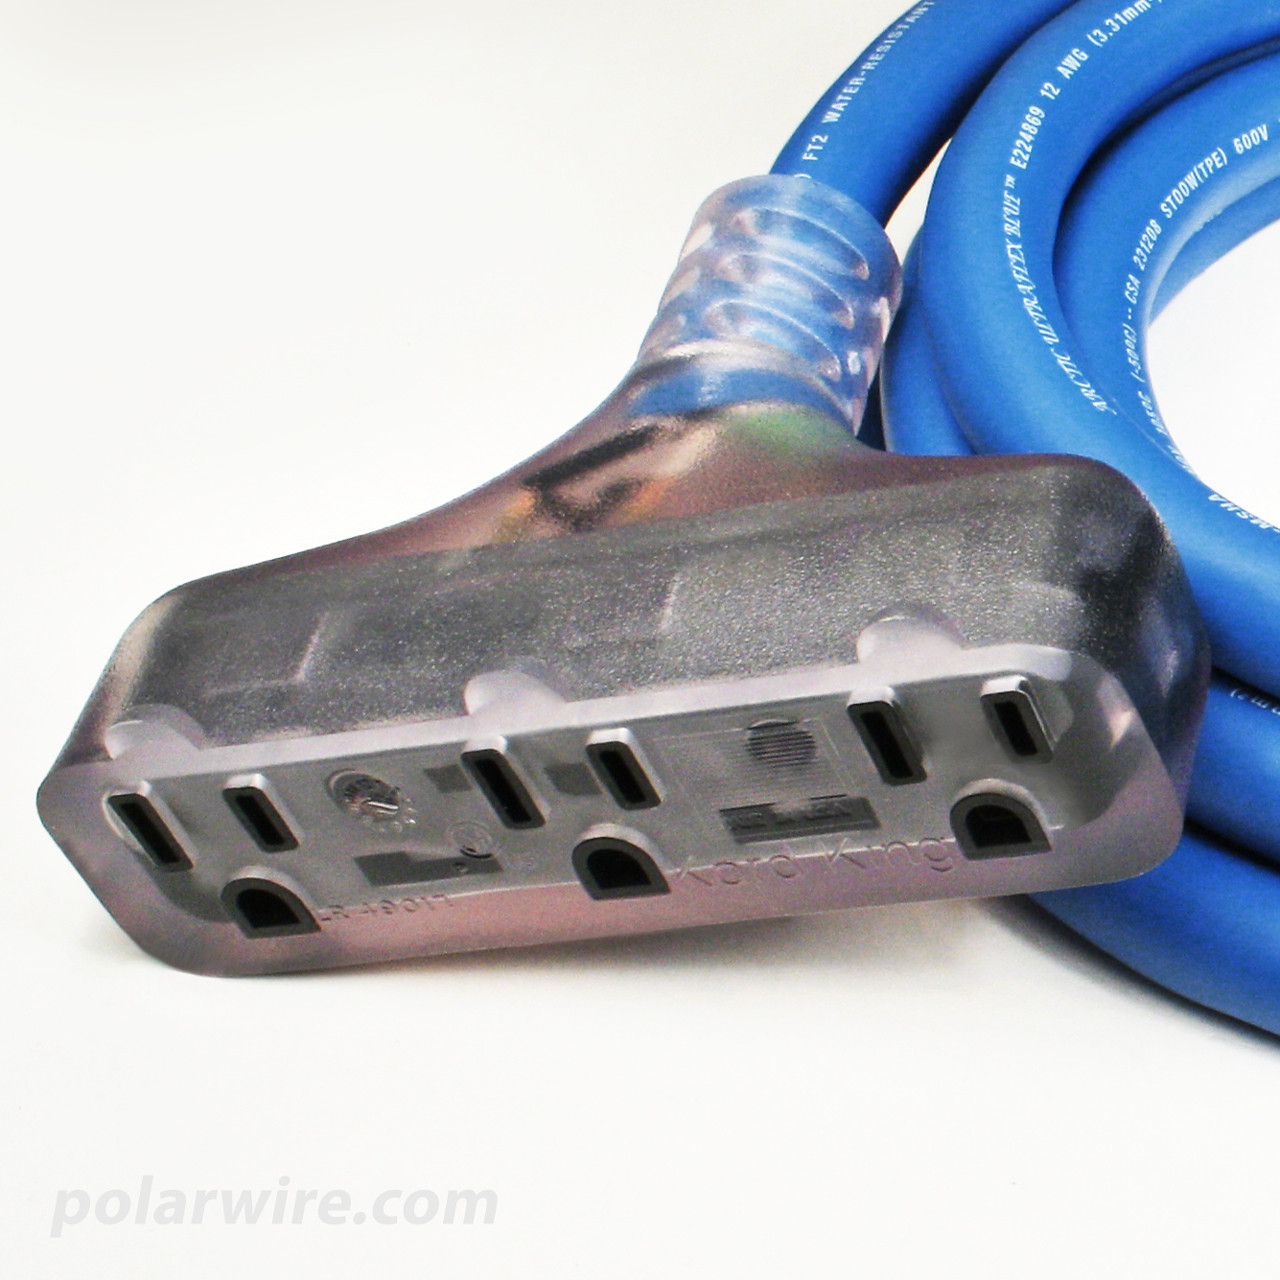 Polar Wire power cords feature clear molded ends with heavy duty strain relief and a tough, highly flexible Arctic Ultraflex Blue jacket